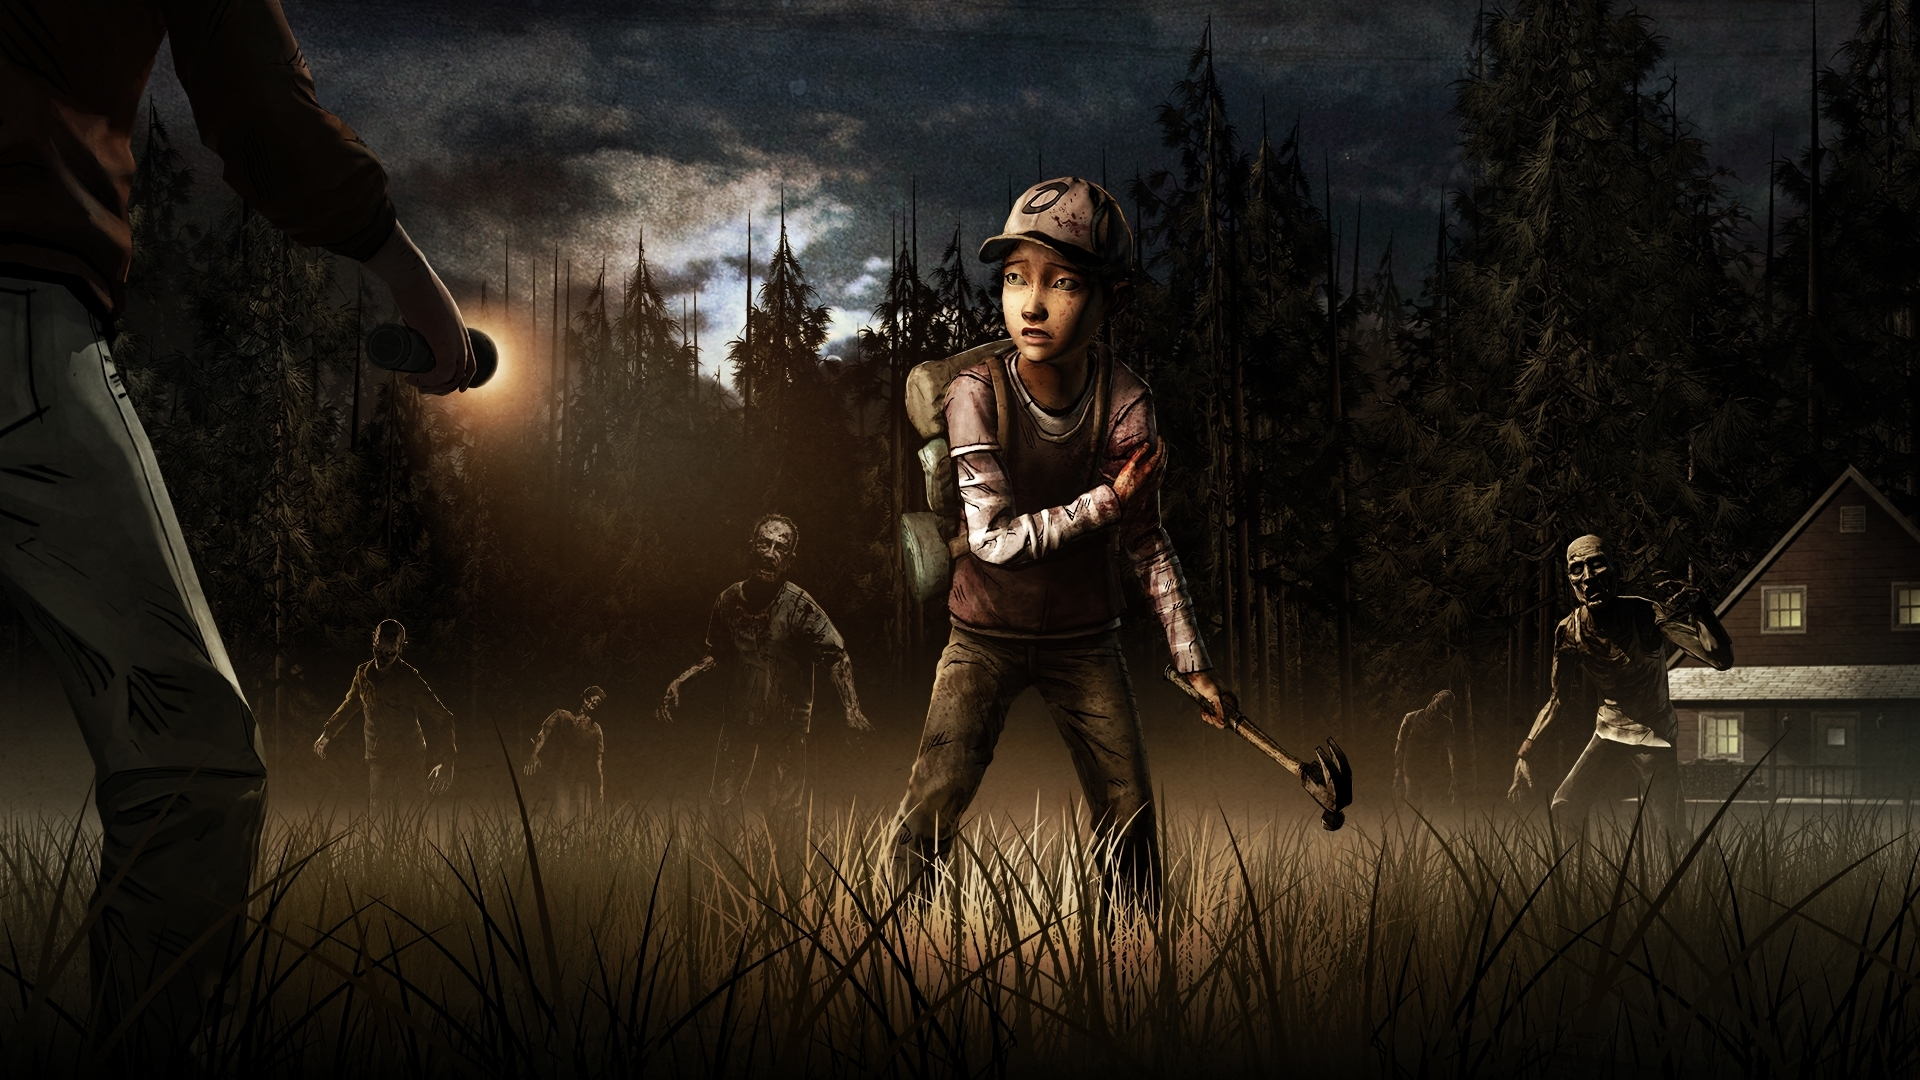 25 the walking dead: season 2 hd wallpapers | background images